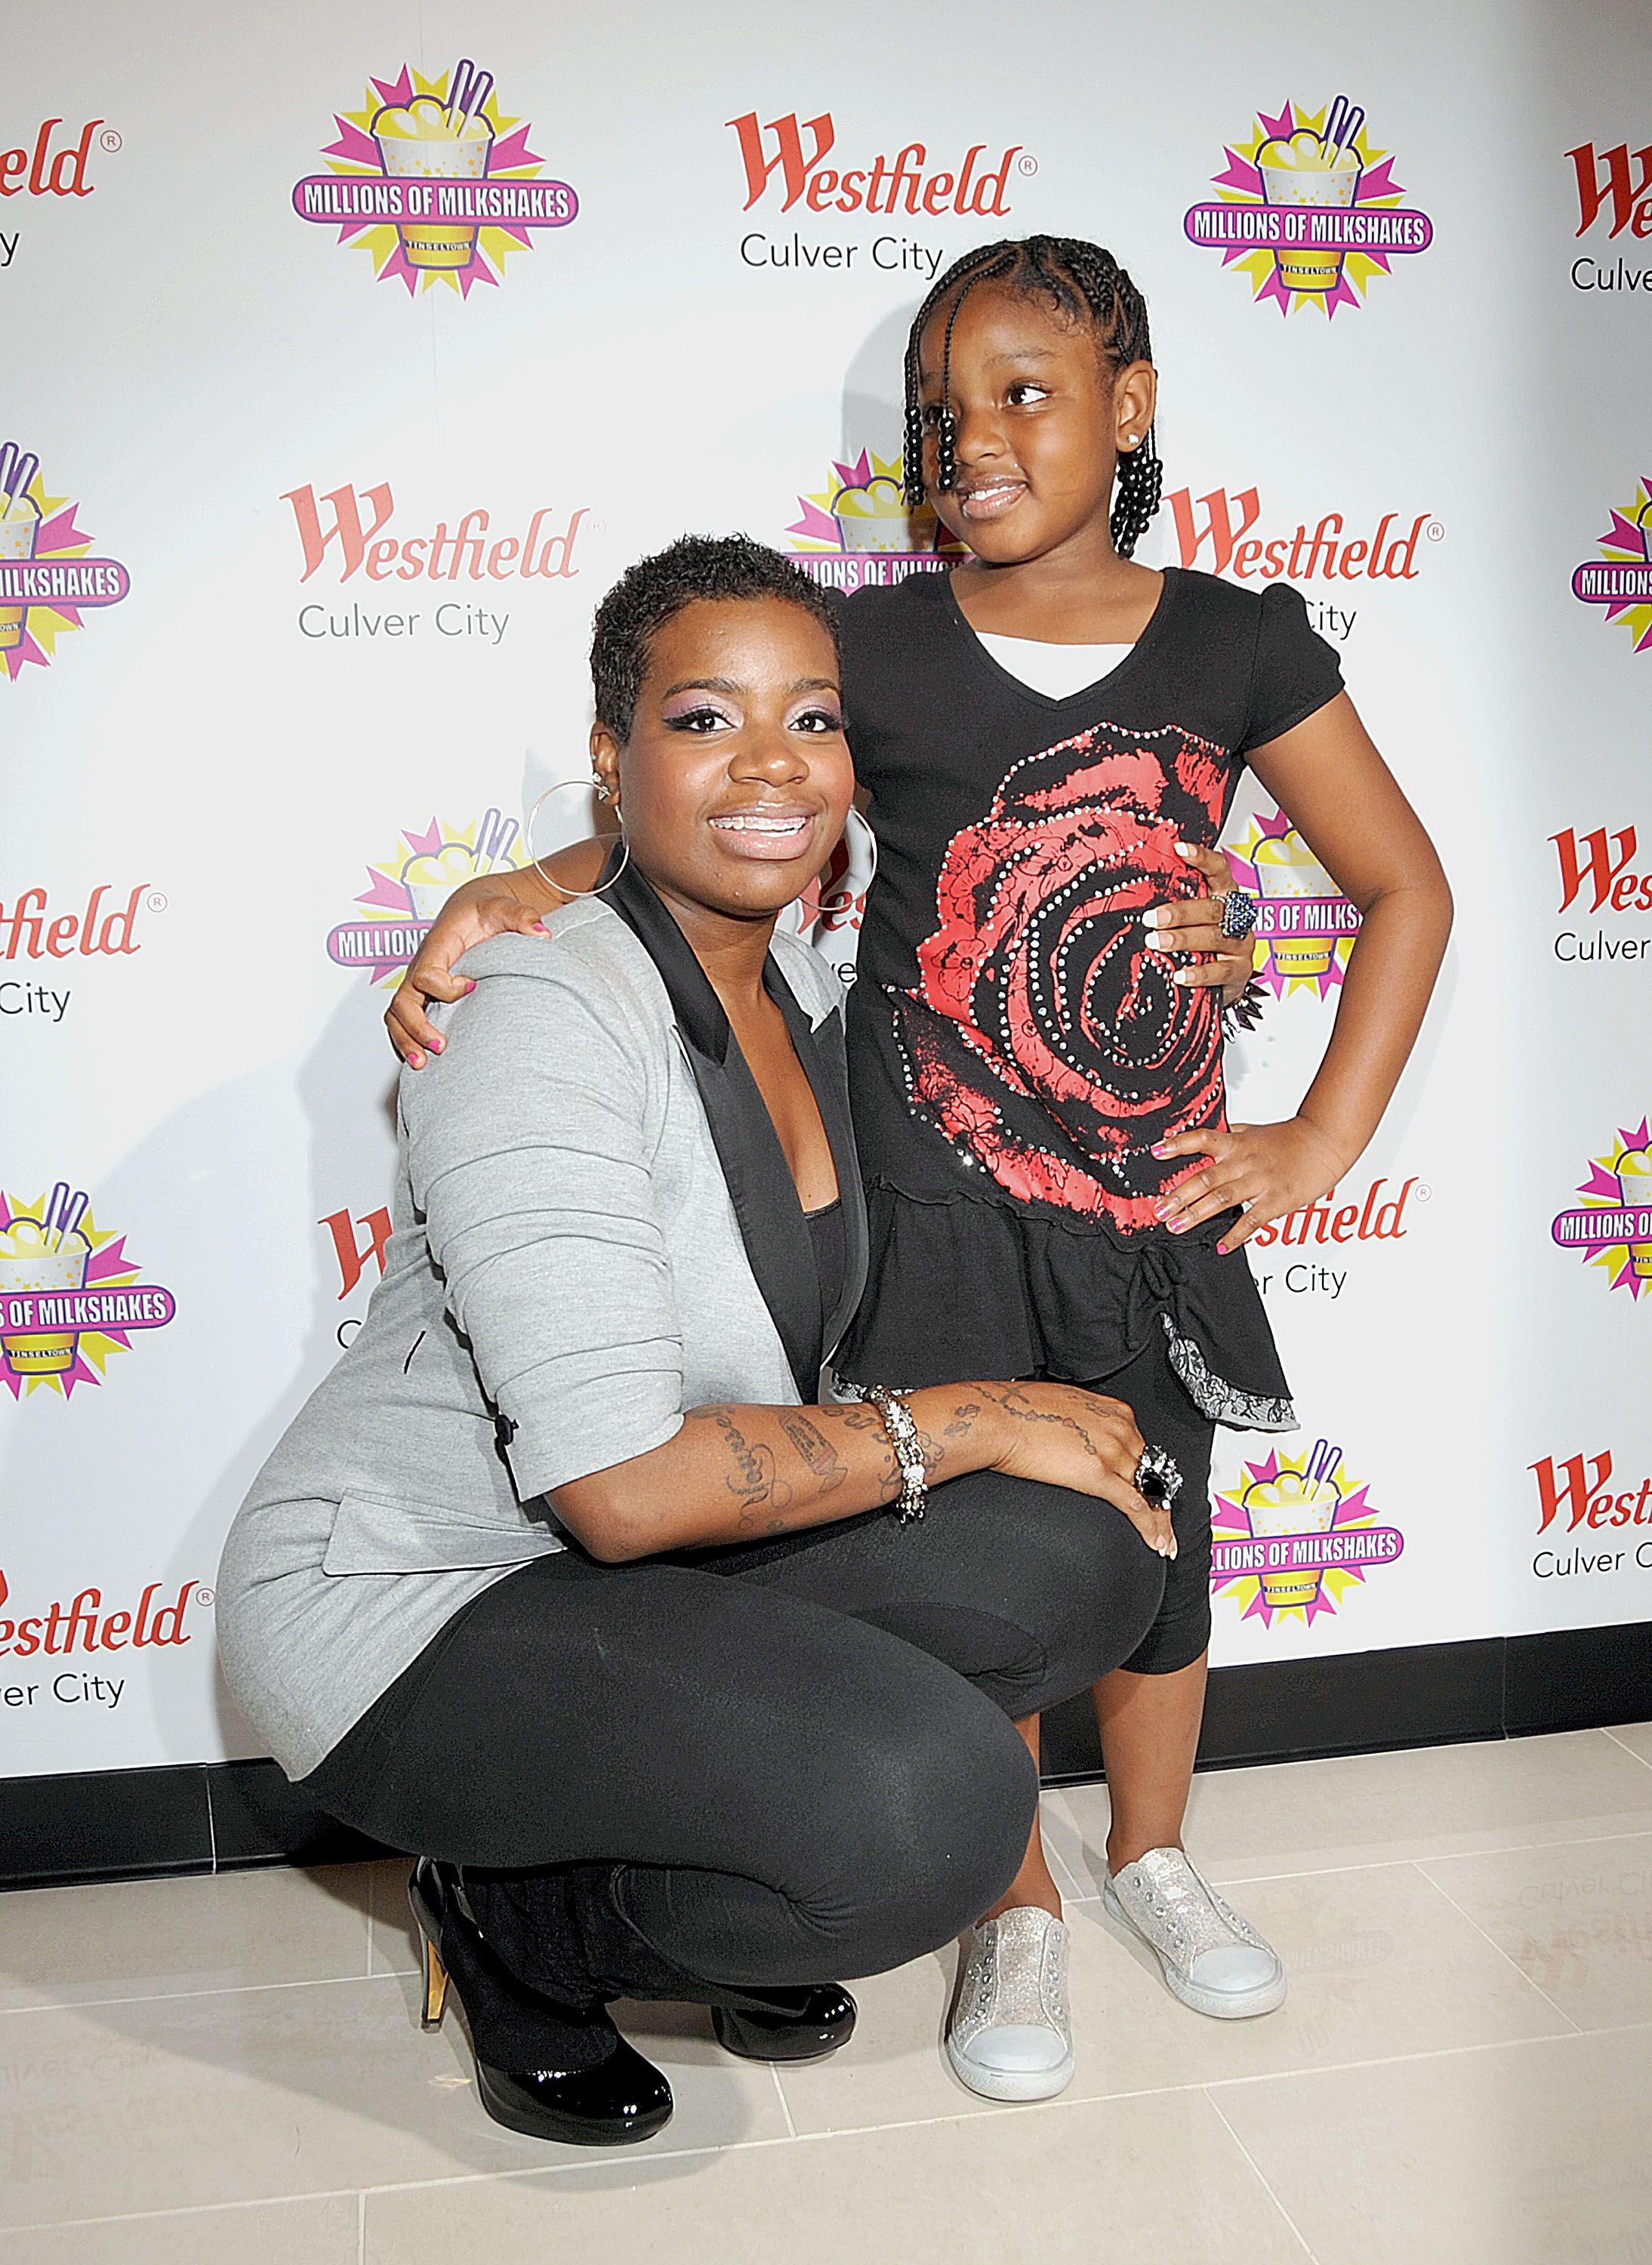 Fantasia Barrino and daughter Zion Barrino attend Millions of Milkshakes on November 24, 2010 in Culver City, California   Photo: Getty Images